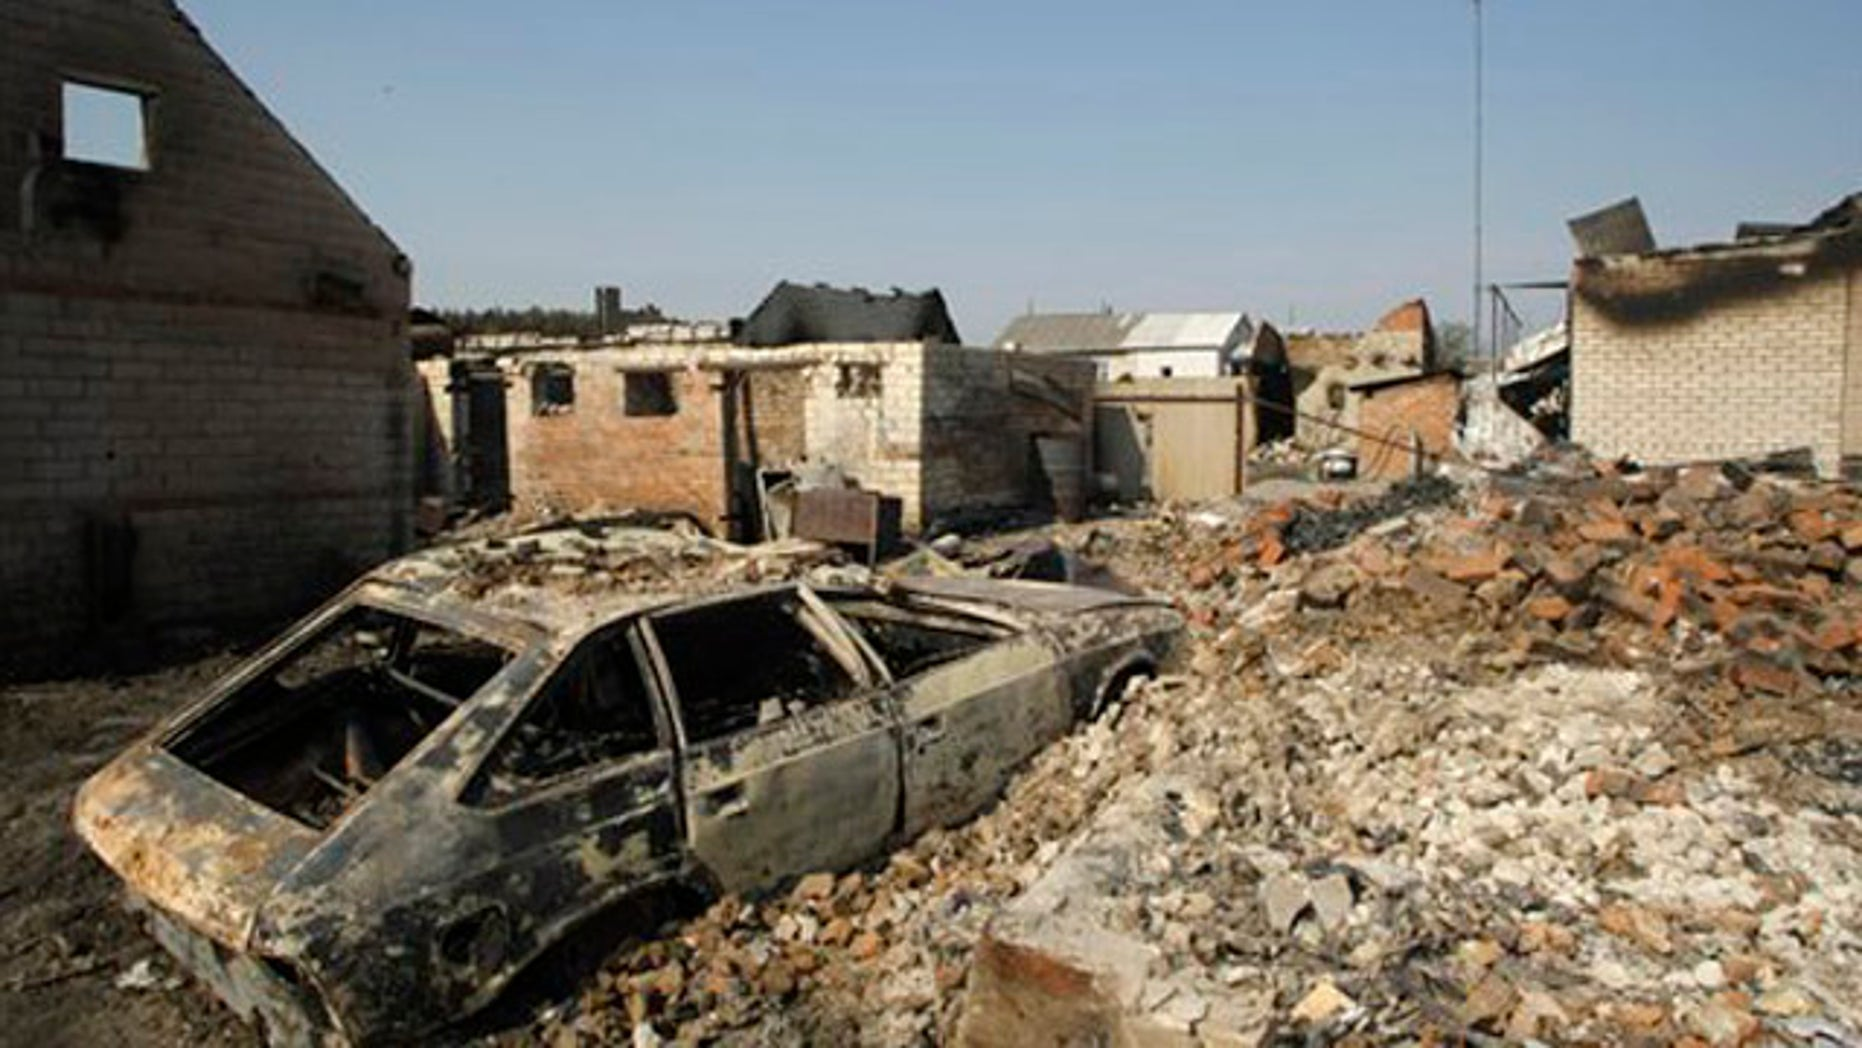 A charred car stands in the village Shuberskoe destroyed by a forest fire near the town of Voronezh, some 500 km (294 miles) south of Moscow, Russia, Monday, Aug. 2, 2010. At least 34 people have died in wildfires that have destroyed hundreds of homes and burned through vast spans of tinder-dry land, but firefighters are making headway and the blazes are dying down.